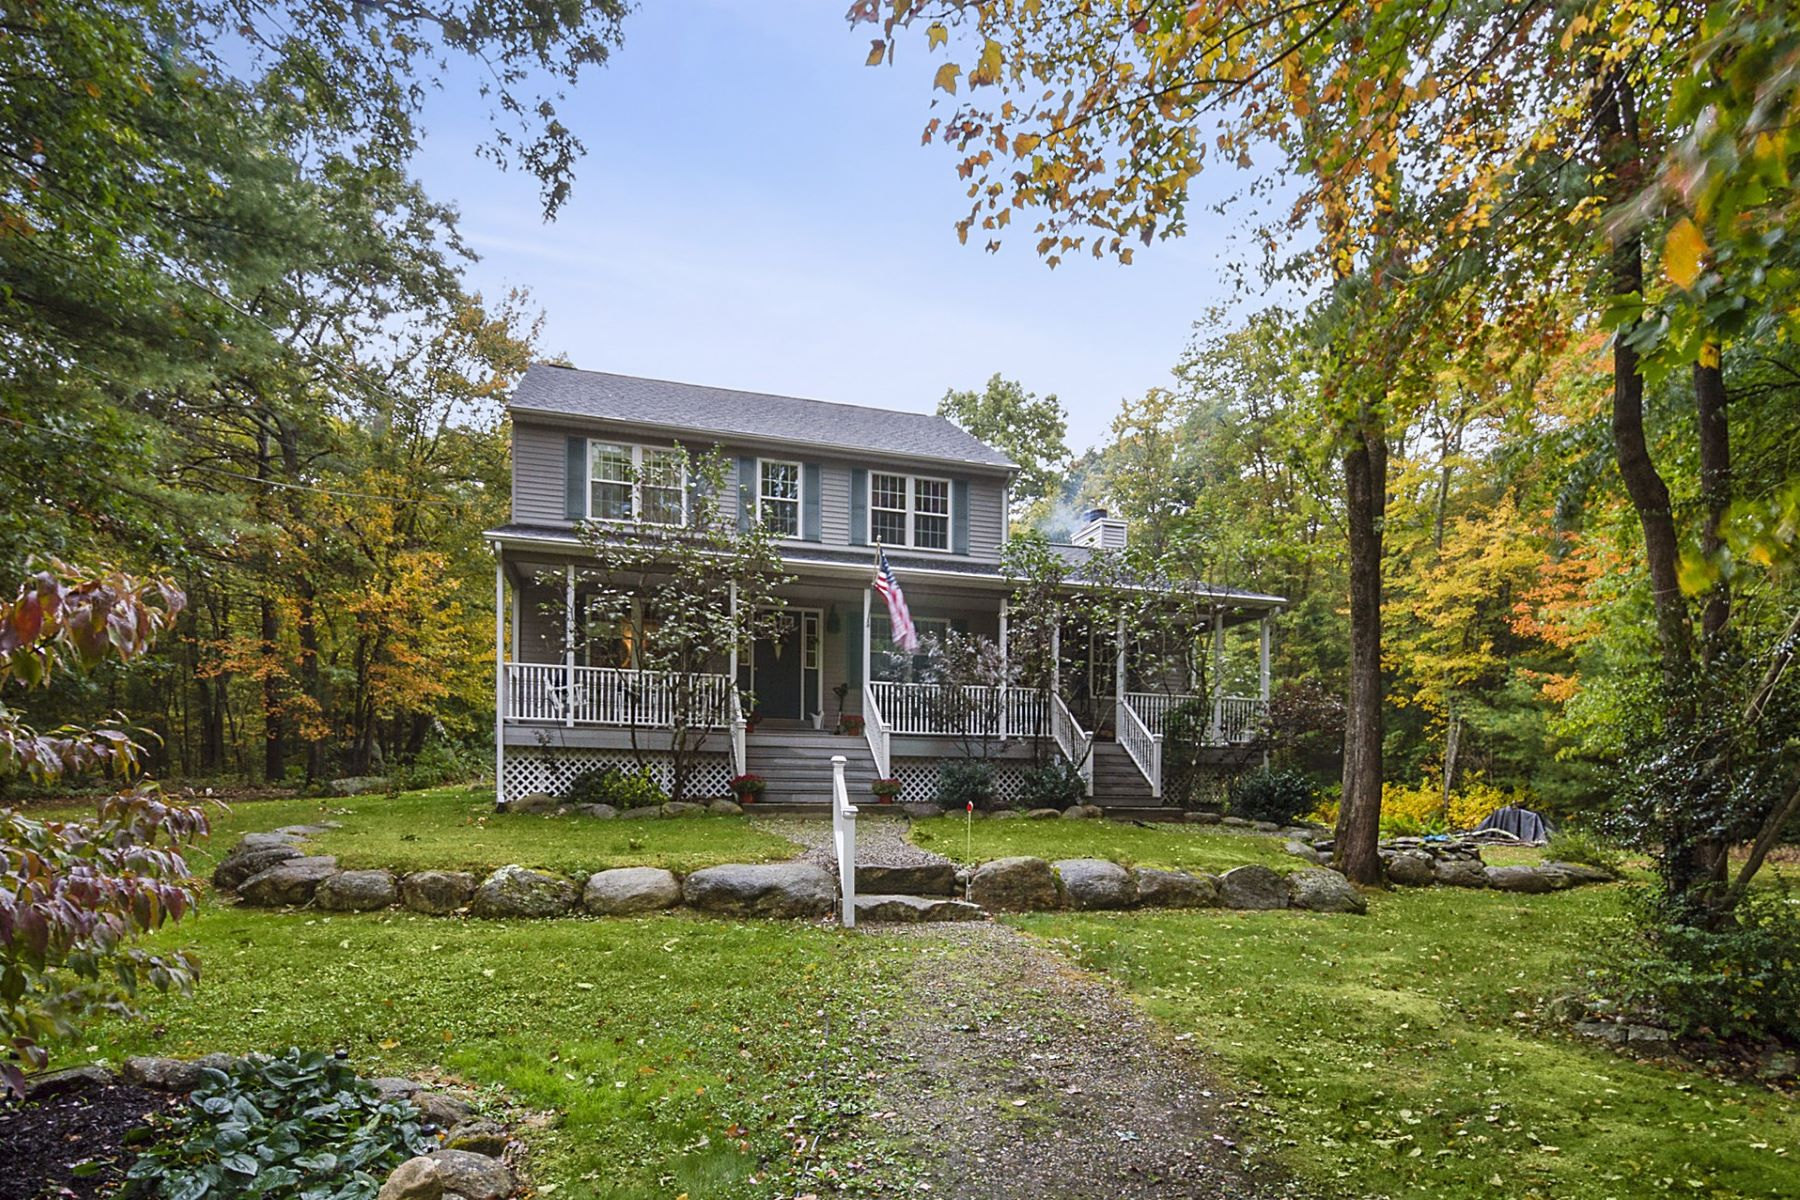 Single Family Homes for Sale at 1883 Snake Hill Road, Glocester, RI 1883 Snake Hill Road Glocester, Rhode Island 02814 United States